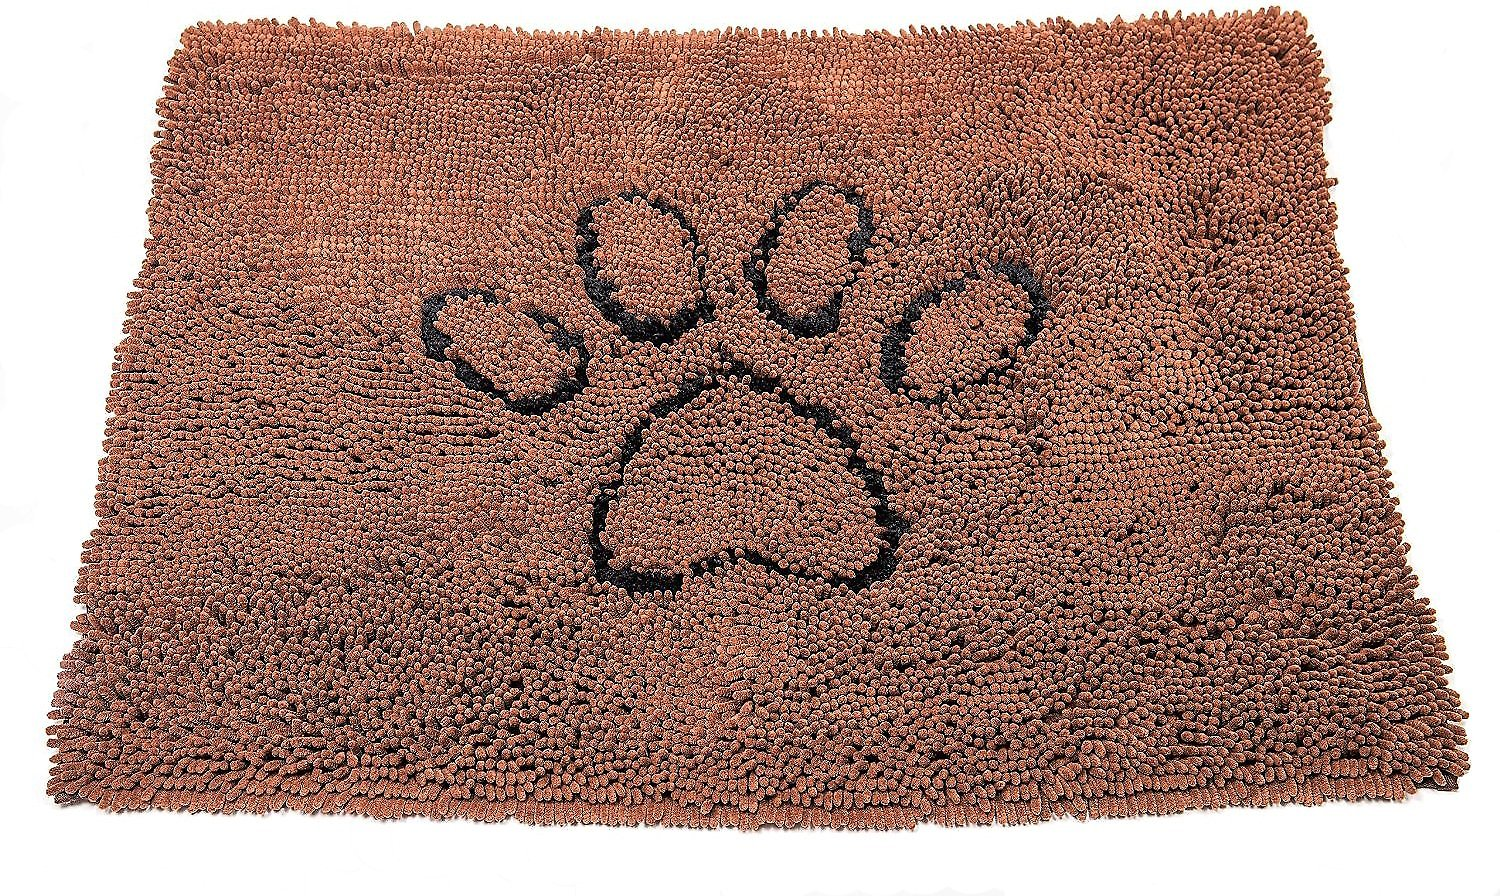 Dog Gone Smart Dirty Dog Doormat, Brown